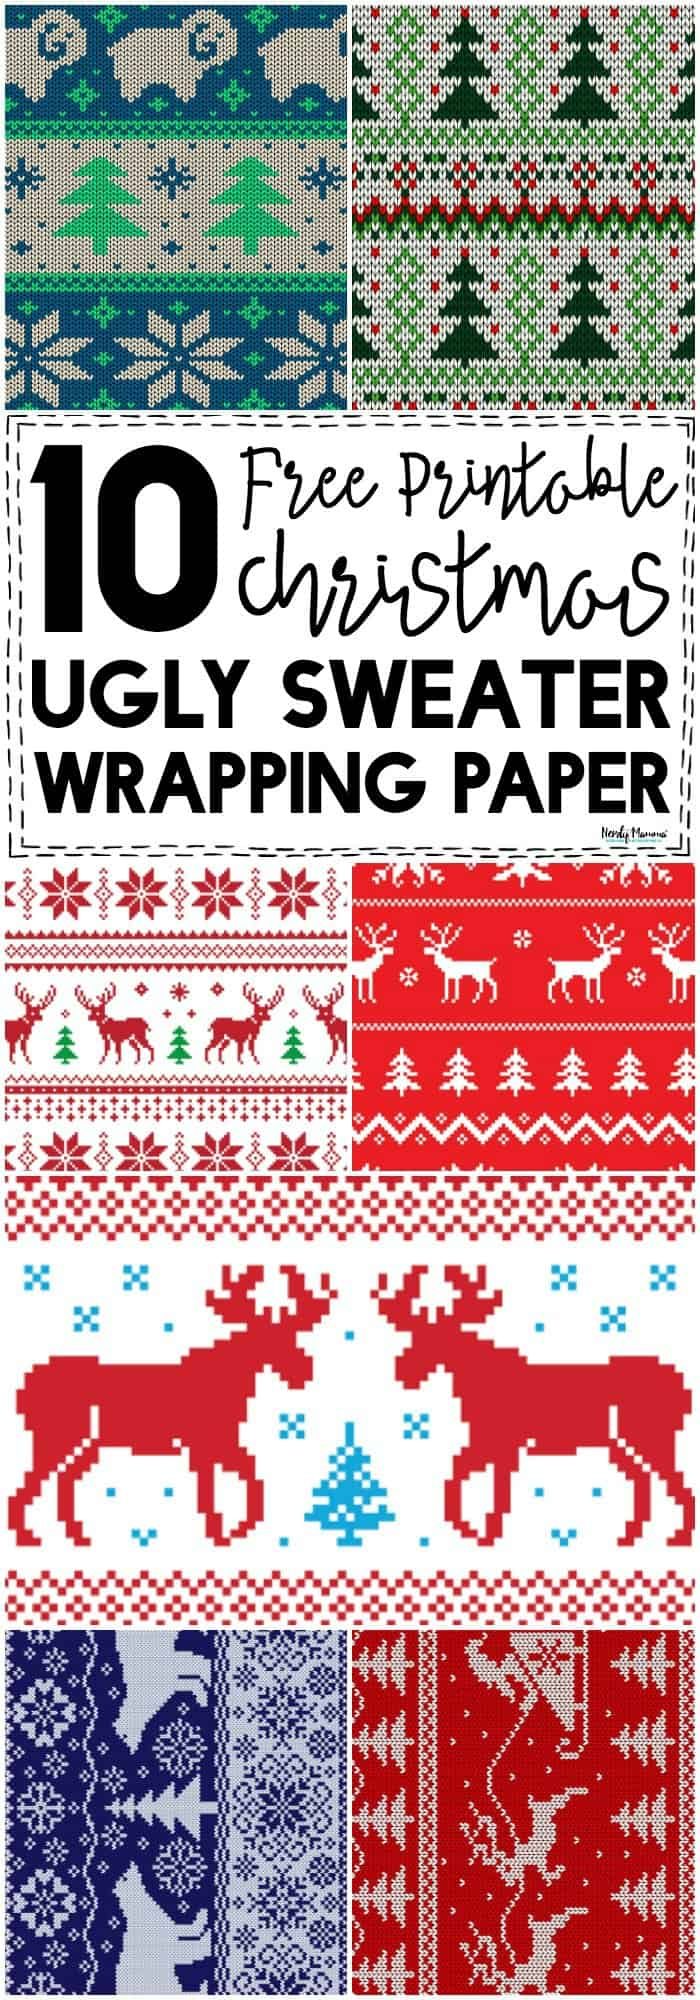 I think, for every present under our tree this year, I'm going to have ugly sweater wrapping on it! This is funny, fun, and kinda nerdy. I love it. #Christmas #holiday #holidayparty #WhiteElephant #Christmastime #DIYgift #freeprintables